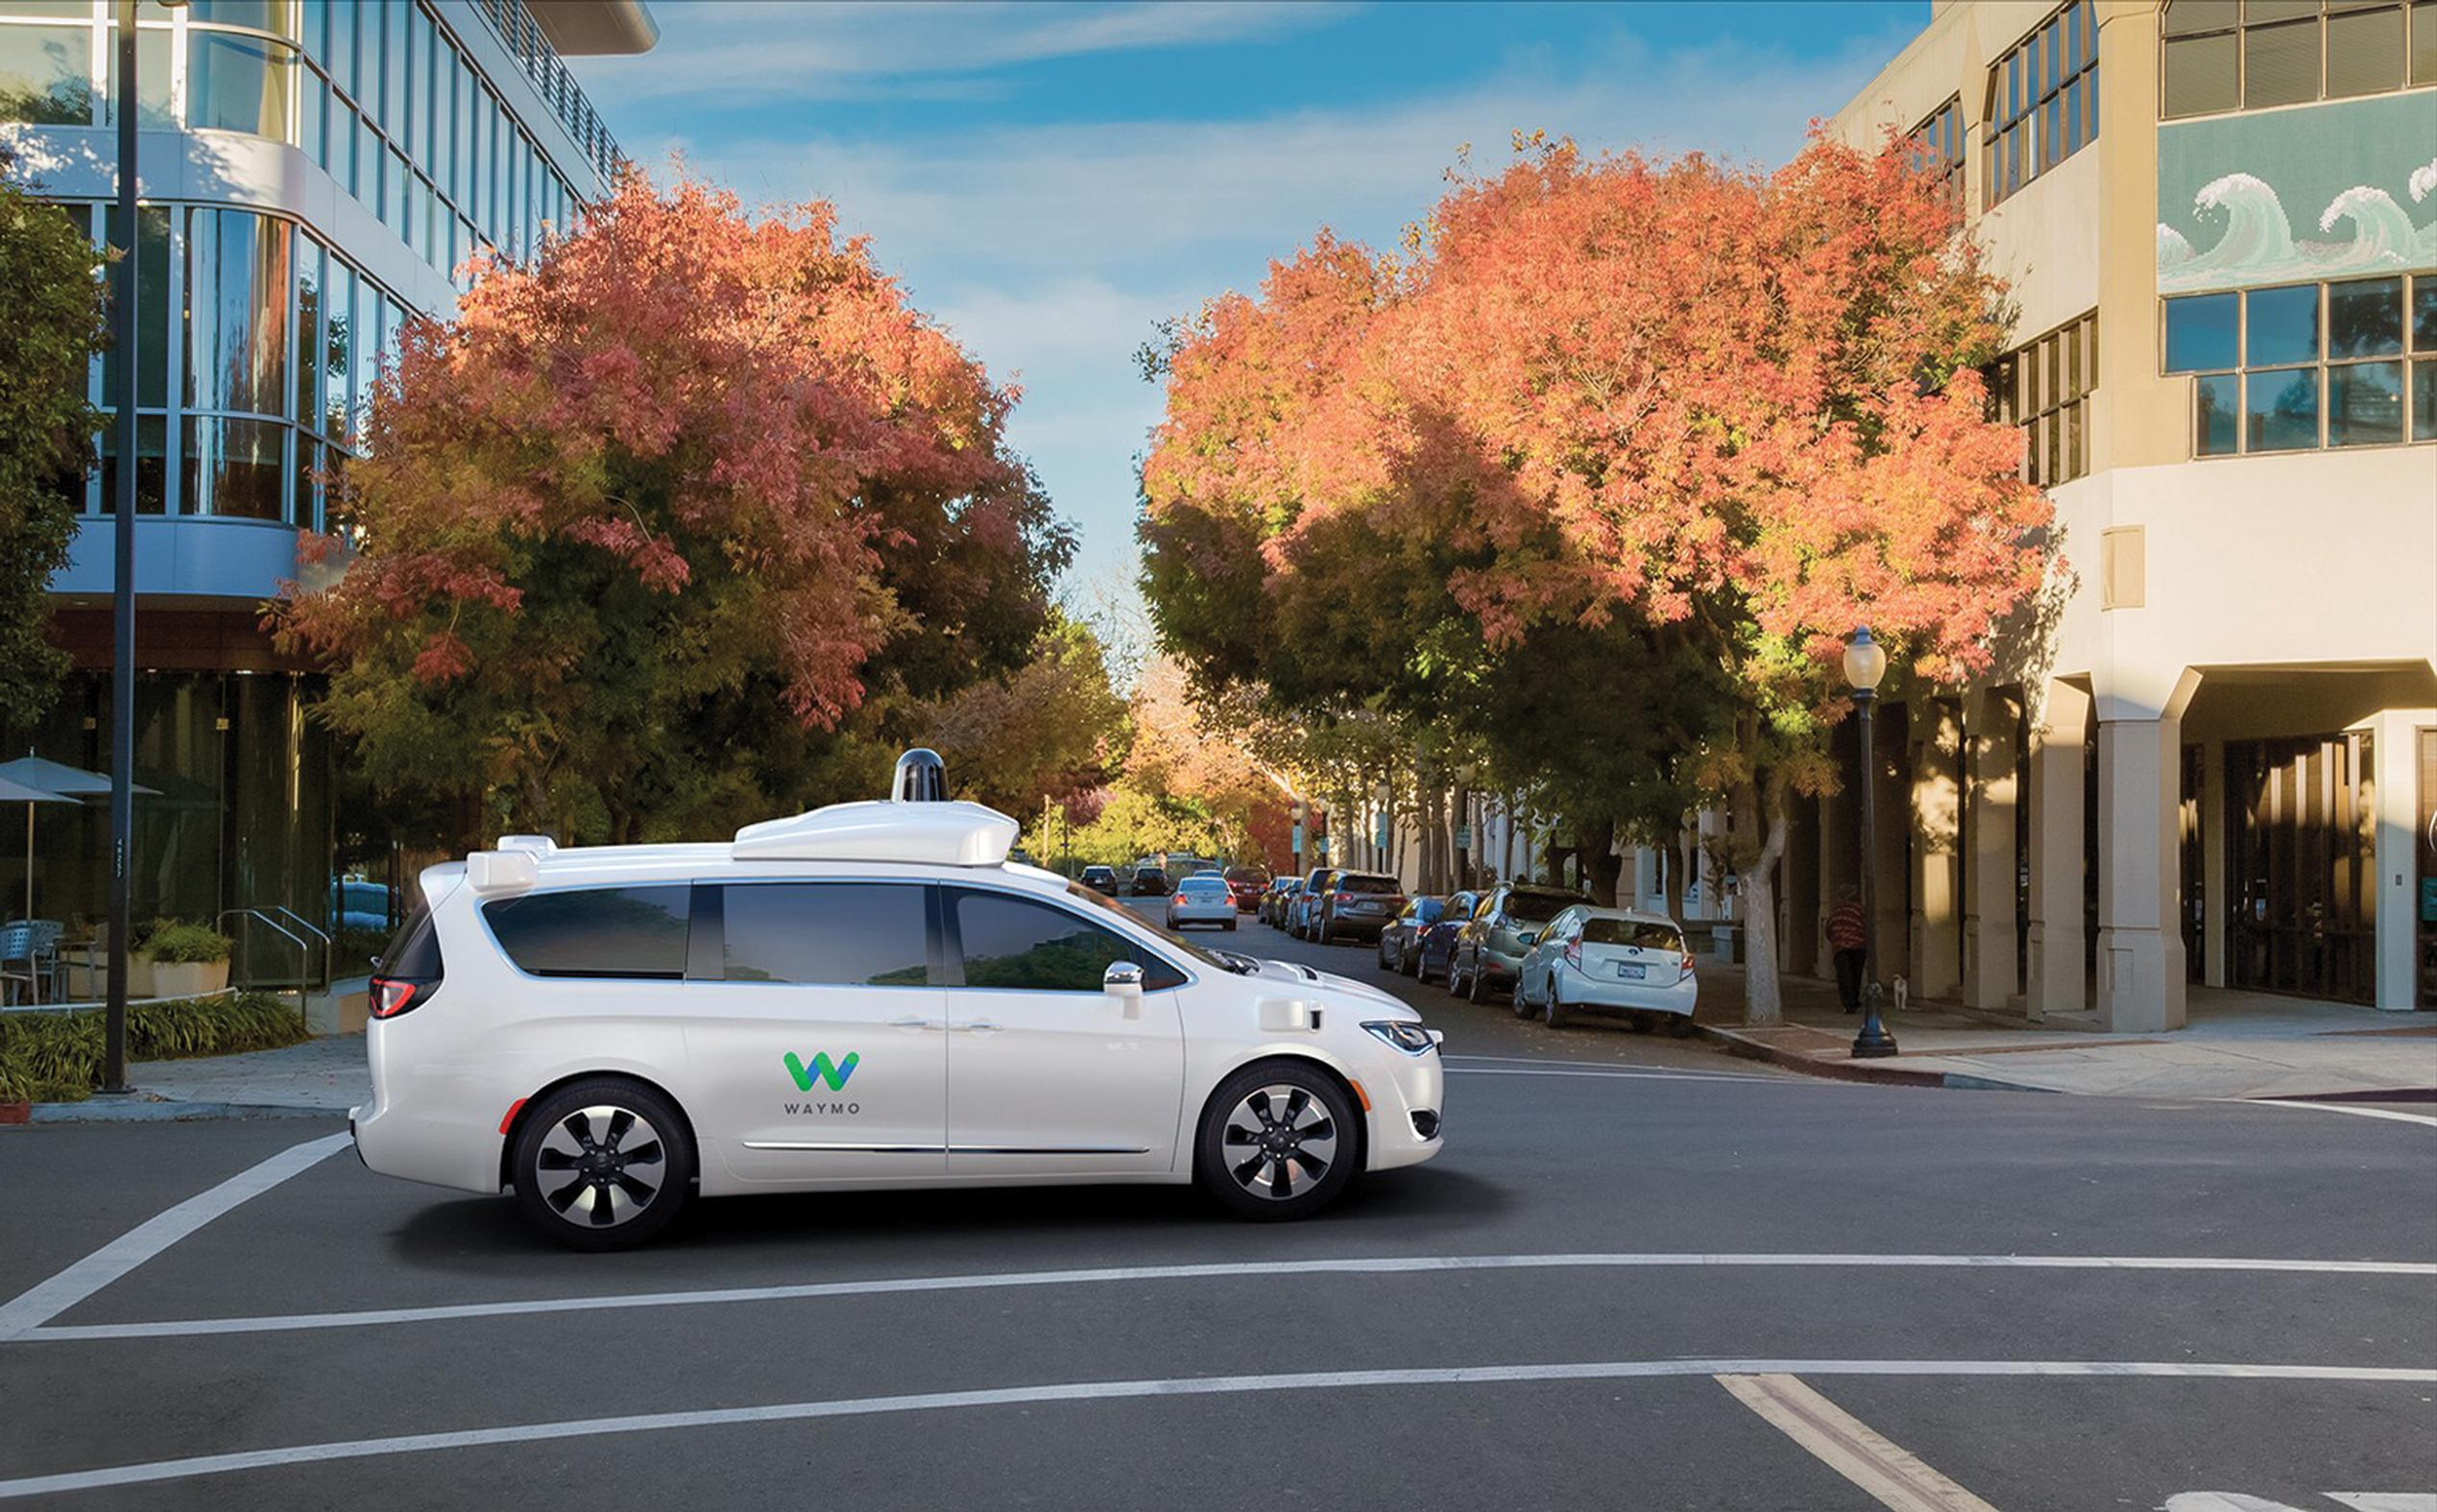 Waymo's latest self-driving vehicle is a minivan meant for multiple and shared occupancy